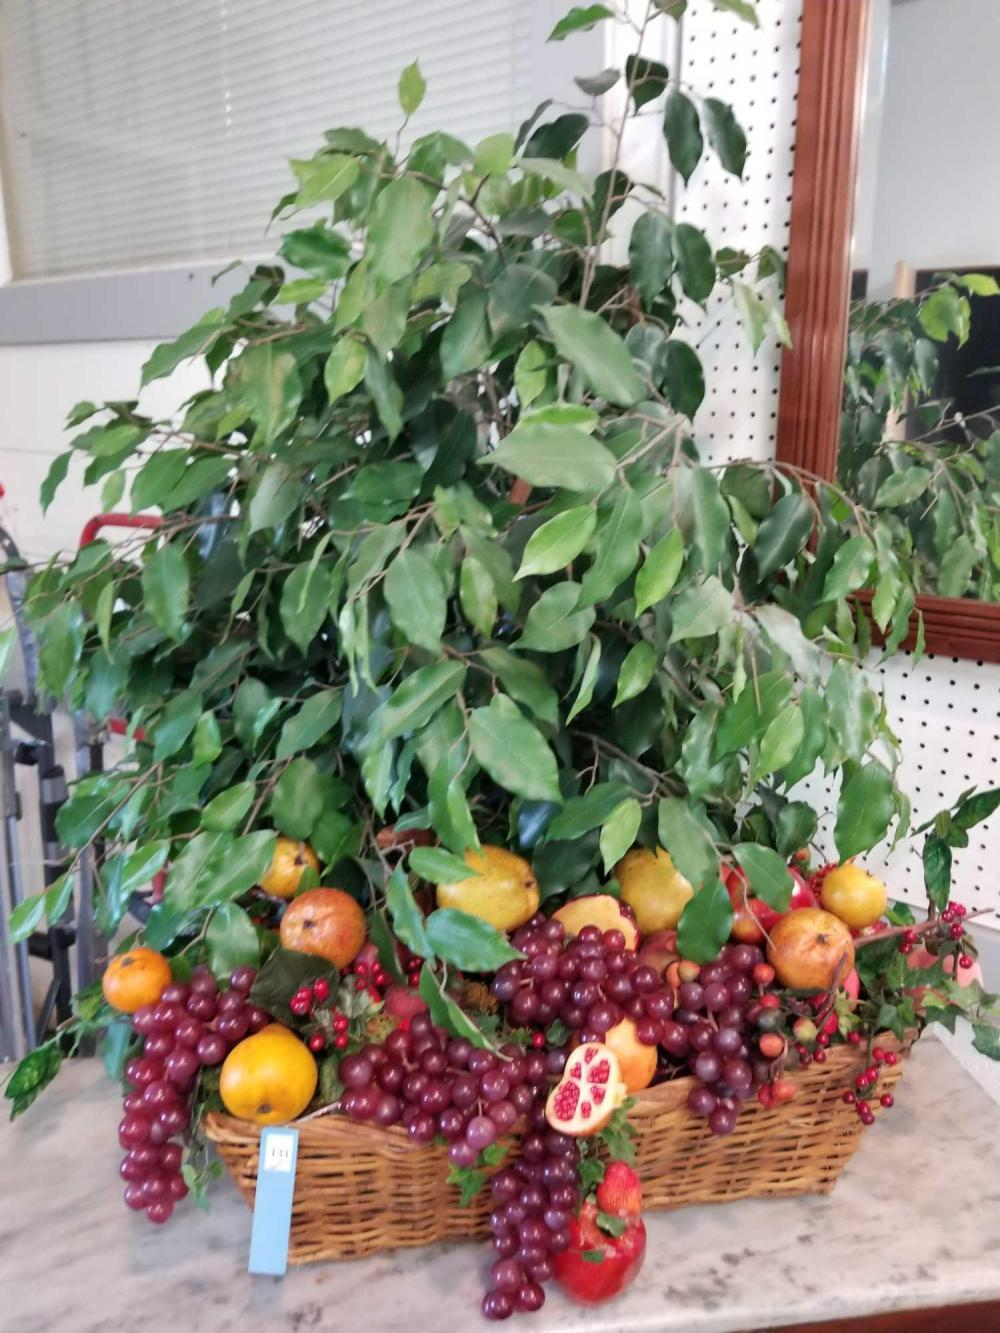 LARGE CENTERPIECE WICKER BASKET FULL OF ARTIFICIAL FRUIT & FICUS TREE - 2 ITEMS